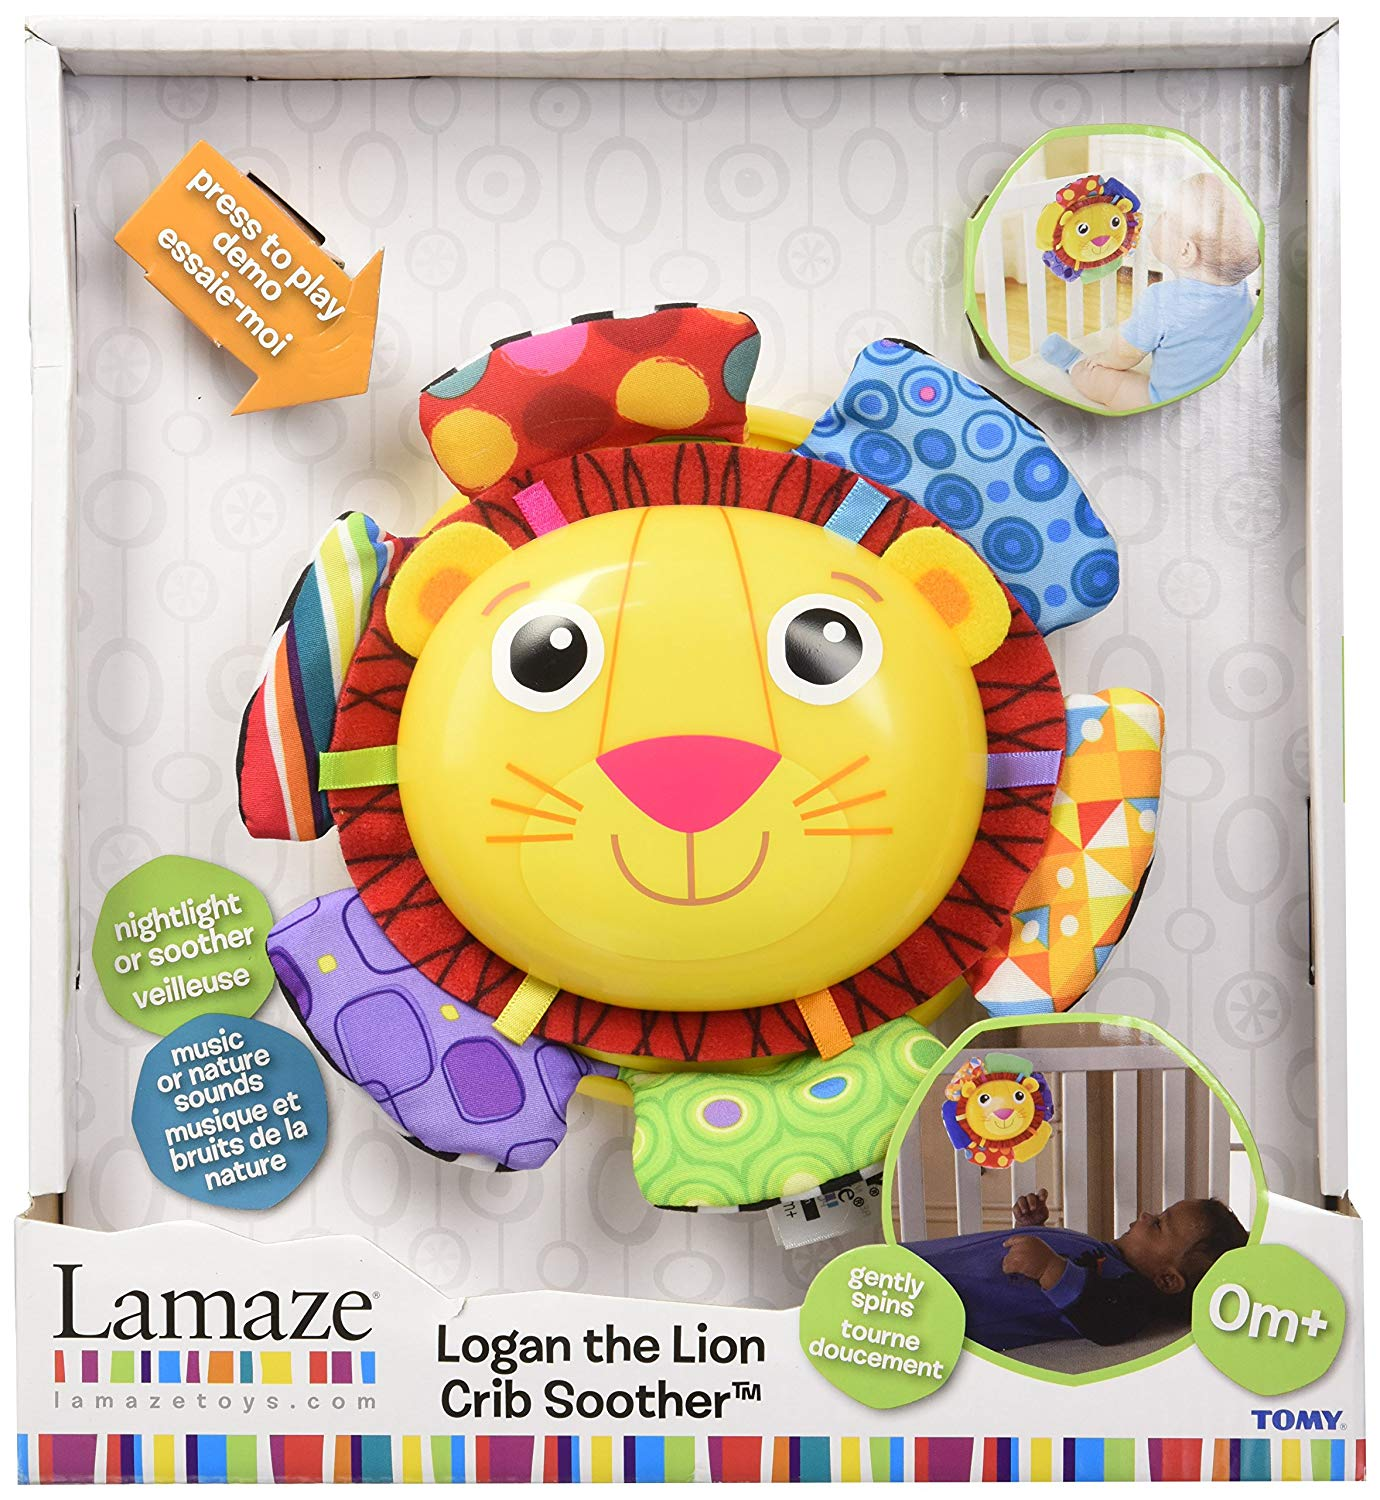 Logan the Lion  Crib Soother  Lazame